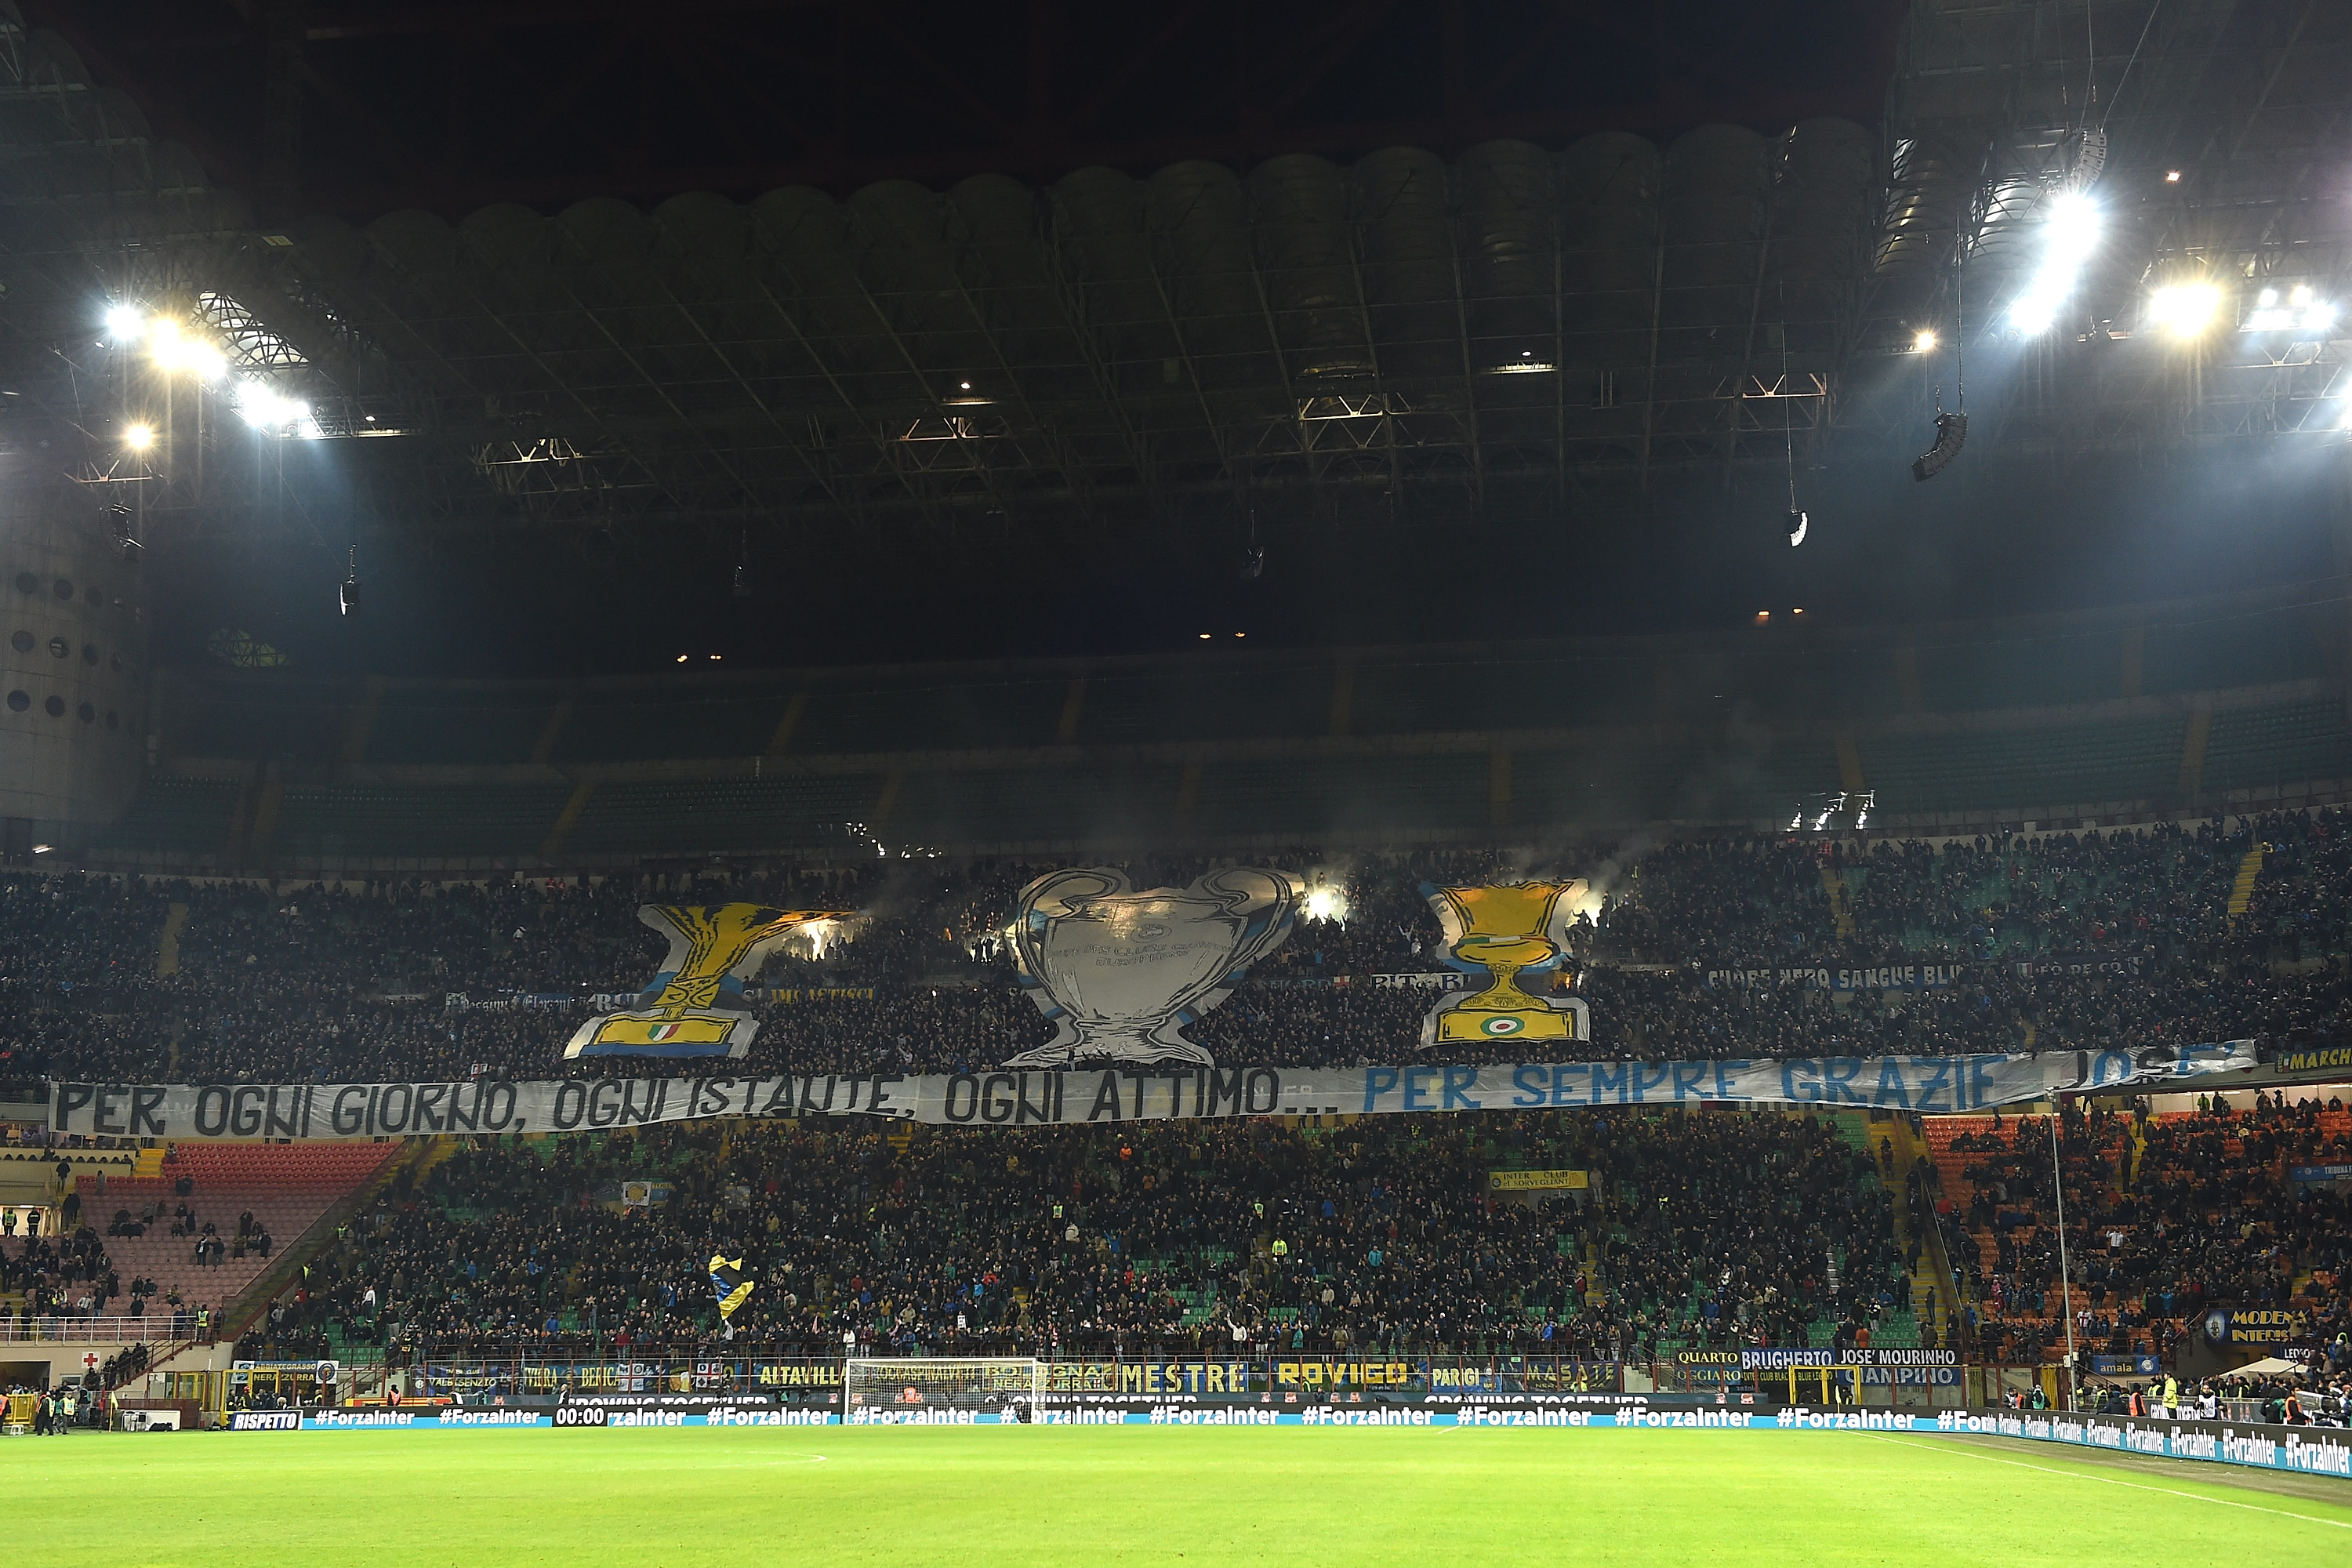 MILAN, ITALY - FEBRUARY 20: FC Internazionale Milano fans display a giant banner of thanks to Jose Mourinho during the Serie A match between FC Internazionale Milano and UC Sampdoria at Stadio Giuseppe Meazza on February 20, 2016 in Milan, Italy. (Photo by Valerio Pennicino/Getty Images)